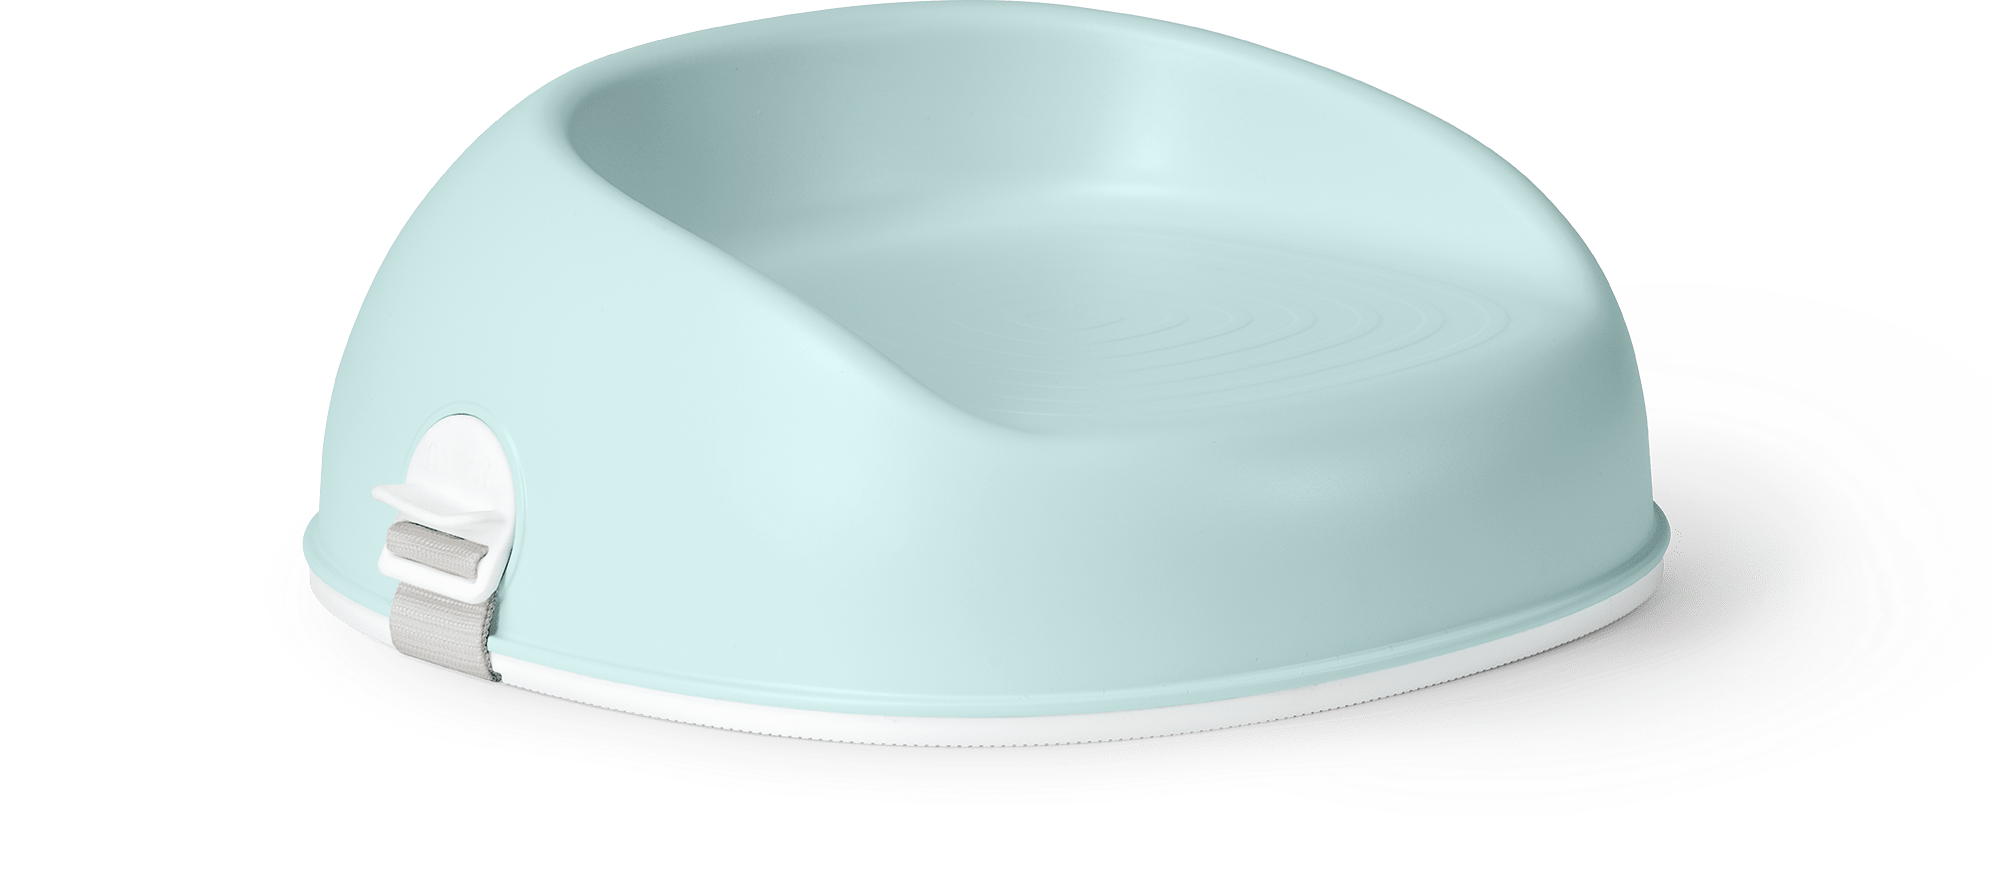 baby bjorn booster chair design simple seat to help reach the table babybjorn in mint green a smart solution that you place on